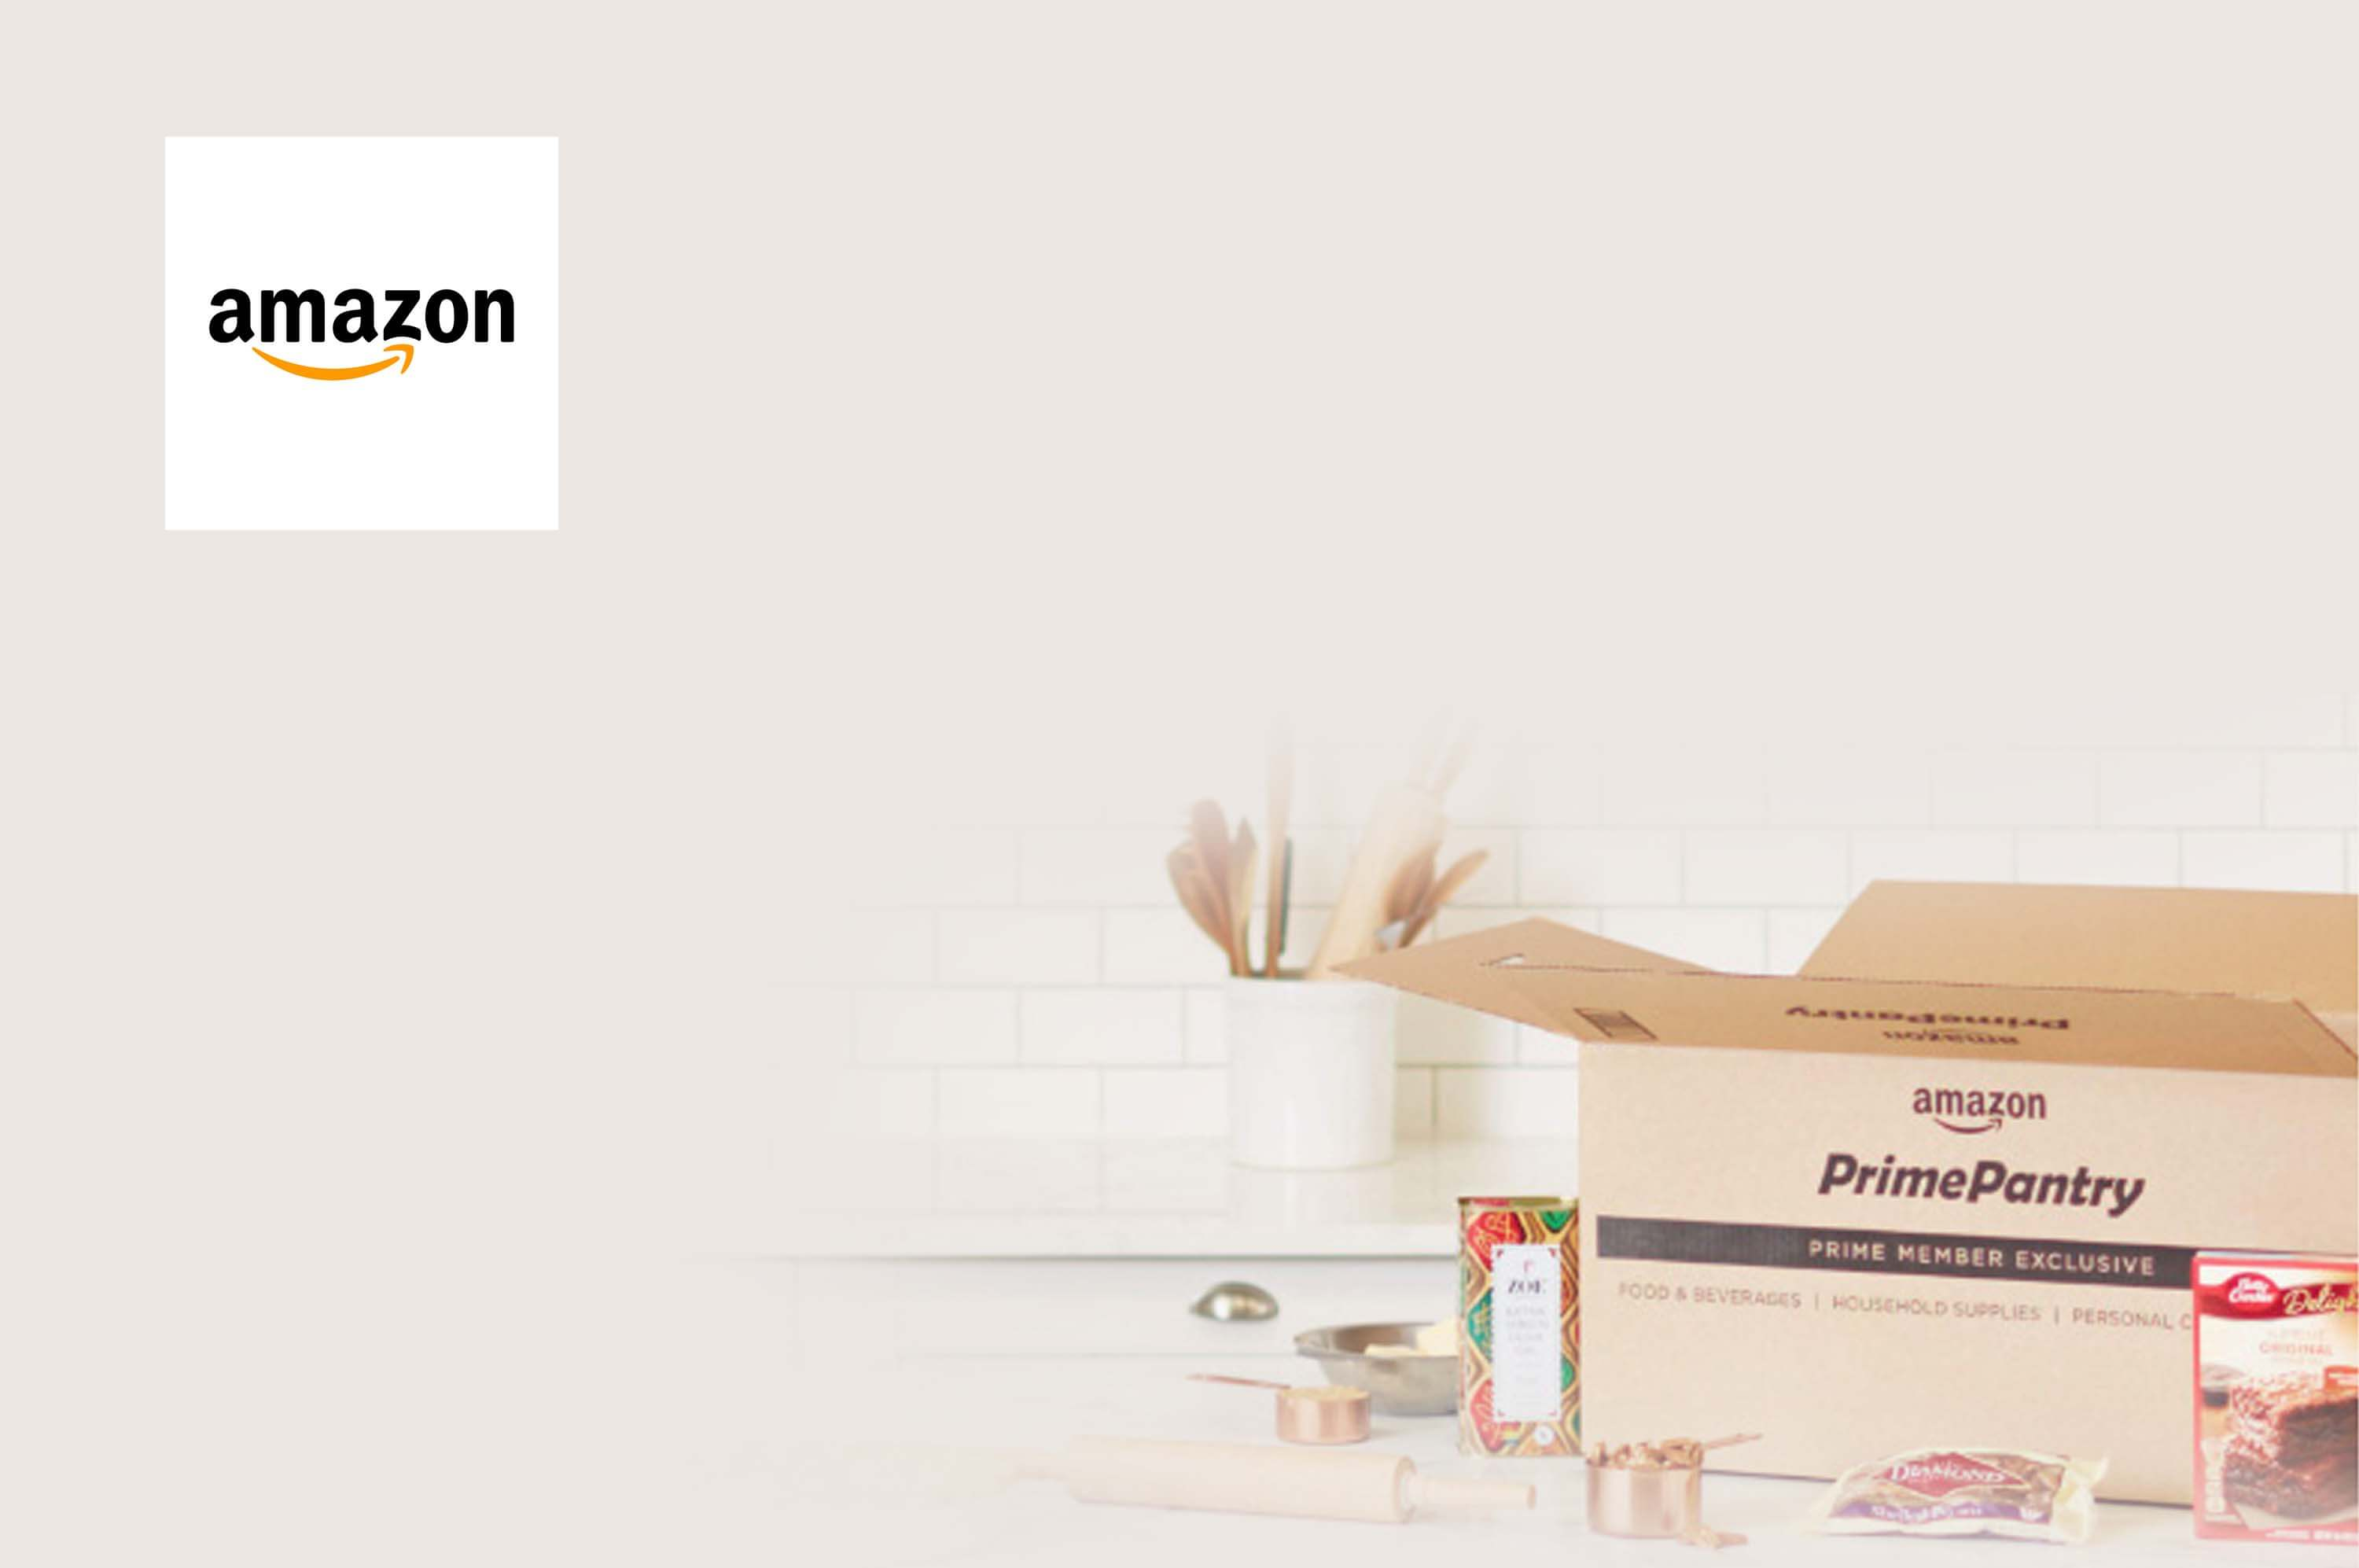 amazon prime pantry image